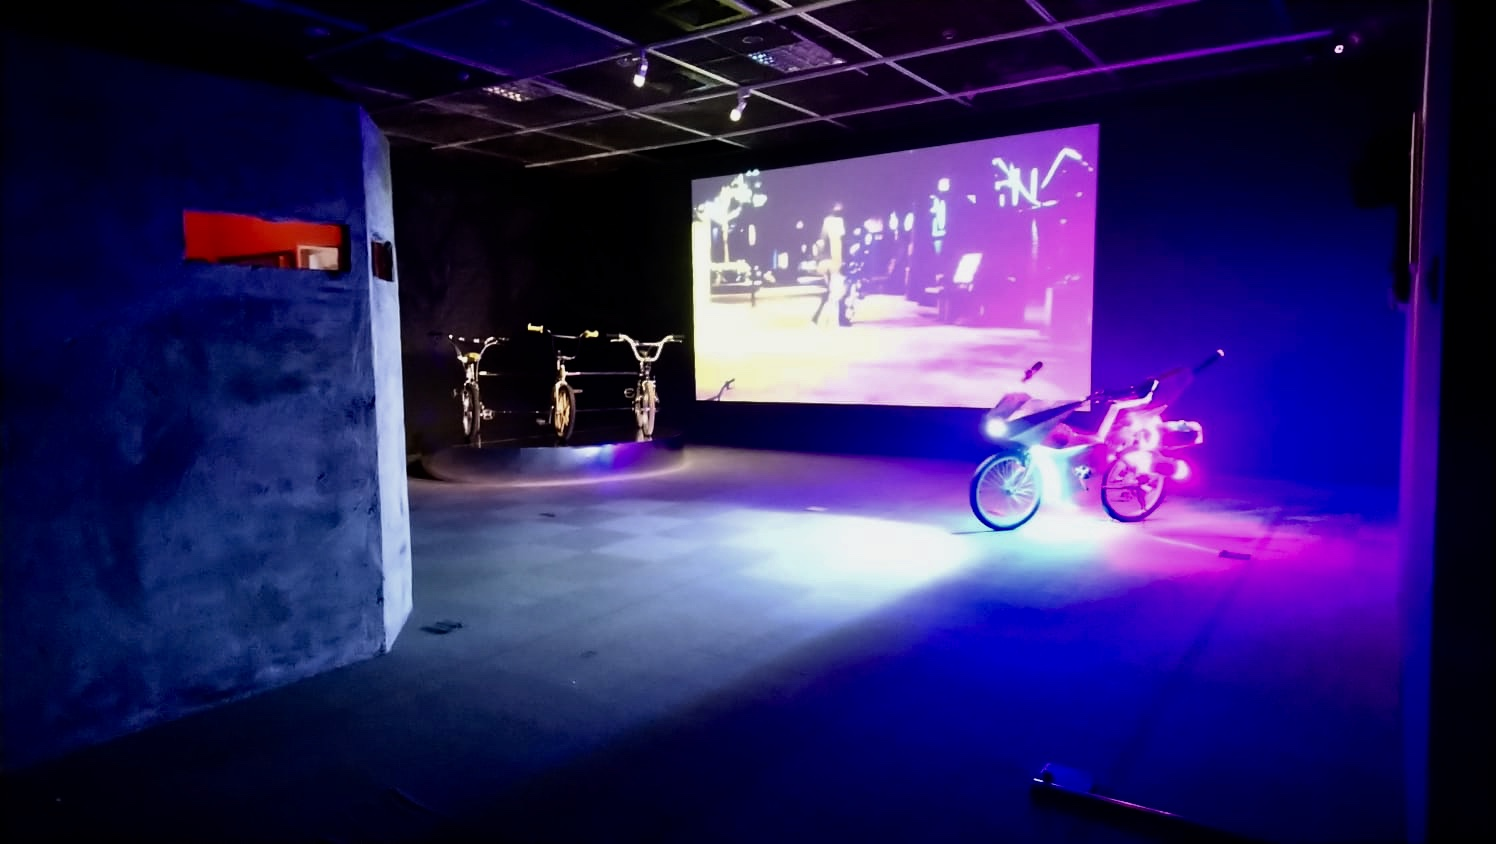 [July/20 - Oct/13/2019] One Upon a Time  Currently exhibiting a group of bicycle creations at the Taipei MOCA in Taiwan, two of the bikes were created specifically for this show. Also had a fantastic time shooting the Bullet No. 4 video near the museum at night. The opening was fantastic, what a show.